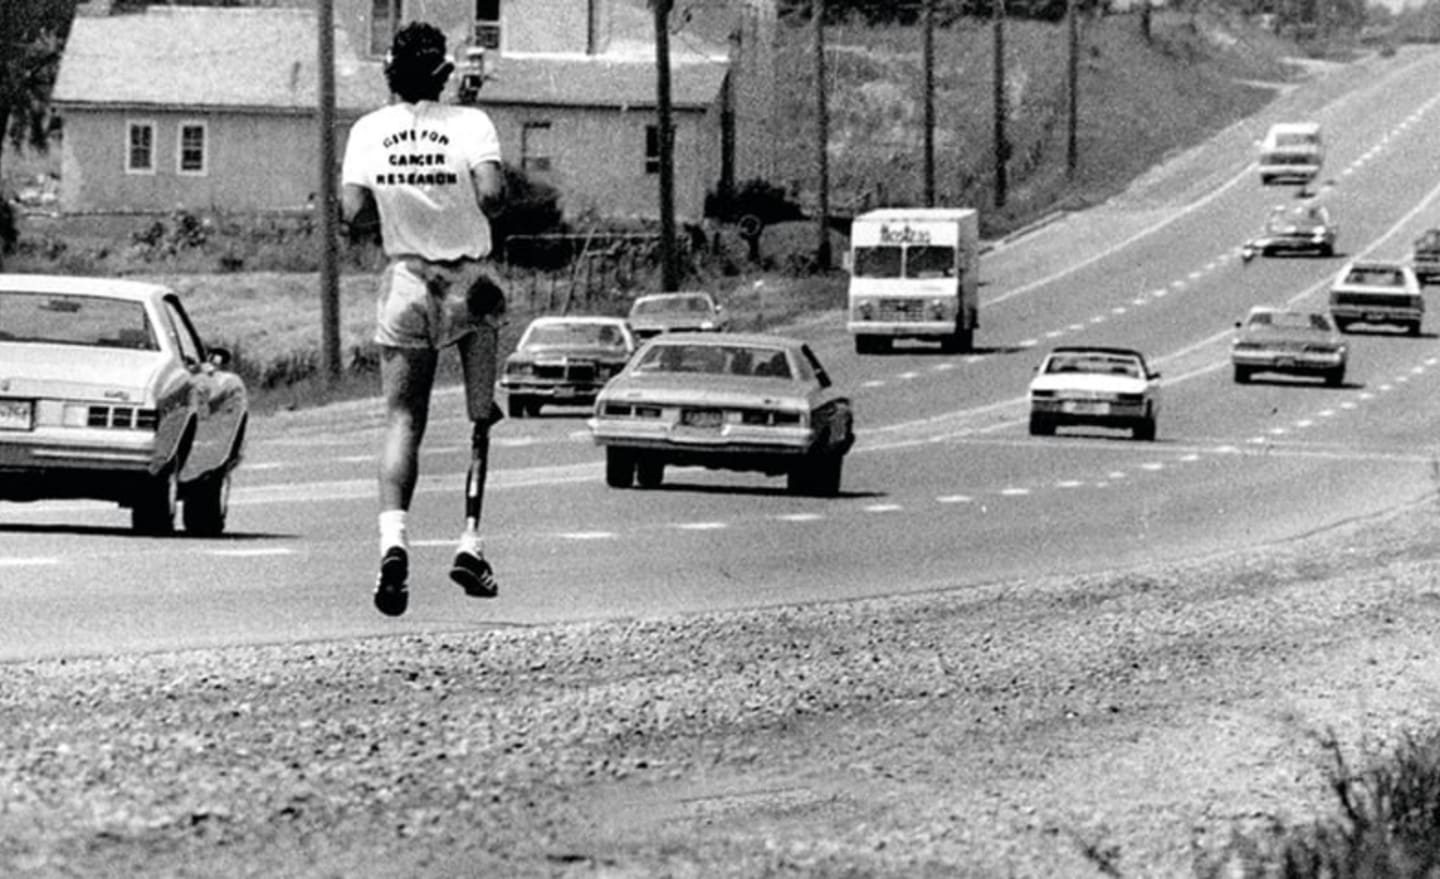 Black and white image of man with prosthetic leg running on road, Terry Fox, Canada, athlete, motivation, inspiration